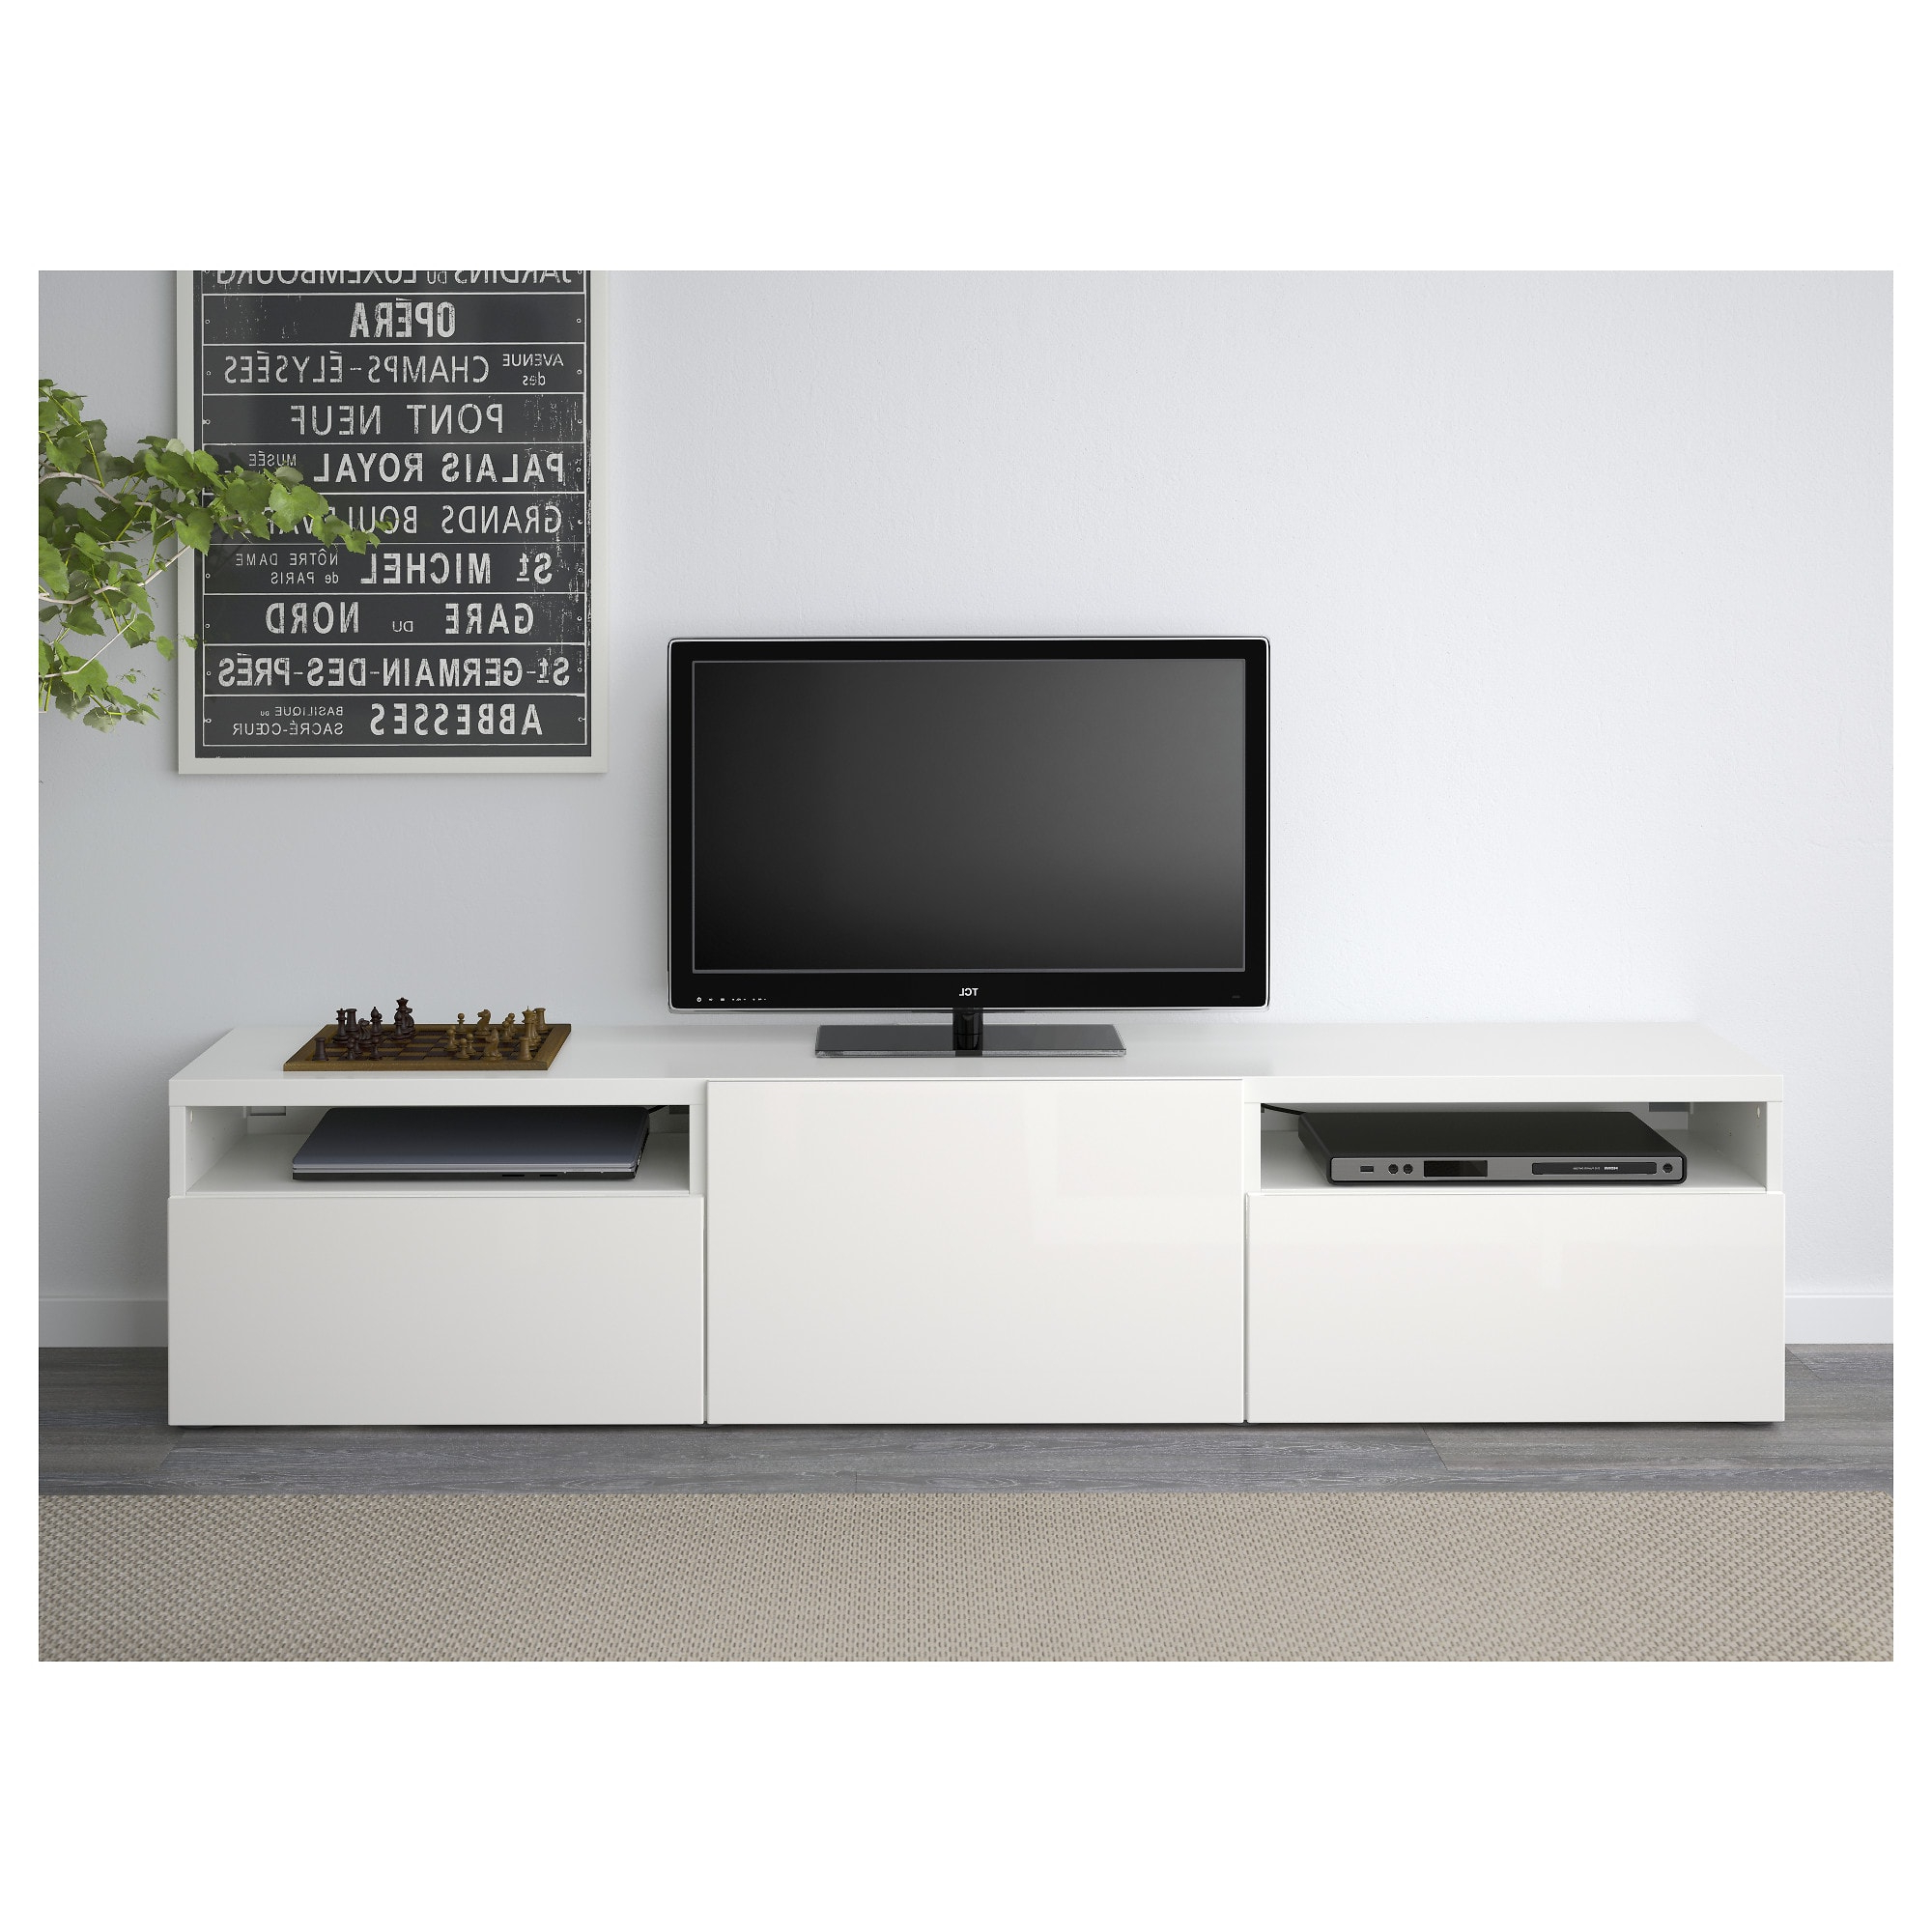 Most Recent Bestå Tv Bench White/selsviken High Gloss/white 180 X 40 X 38 Cm – Ikea With Black Gloss Tv Benches (View 12 of 20)